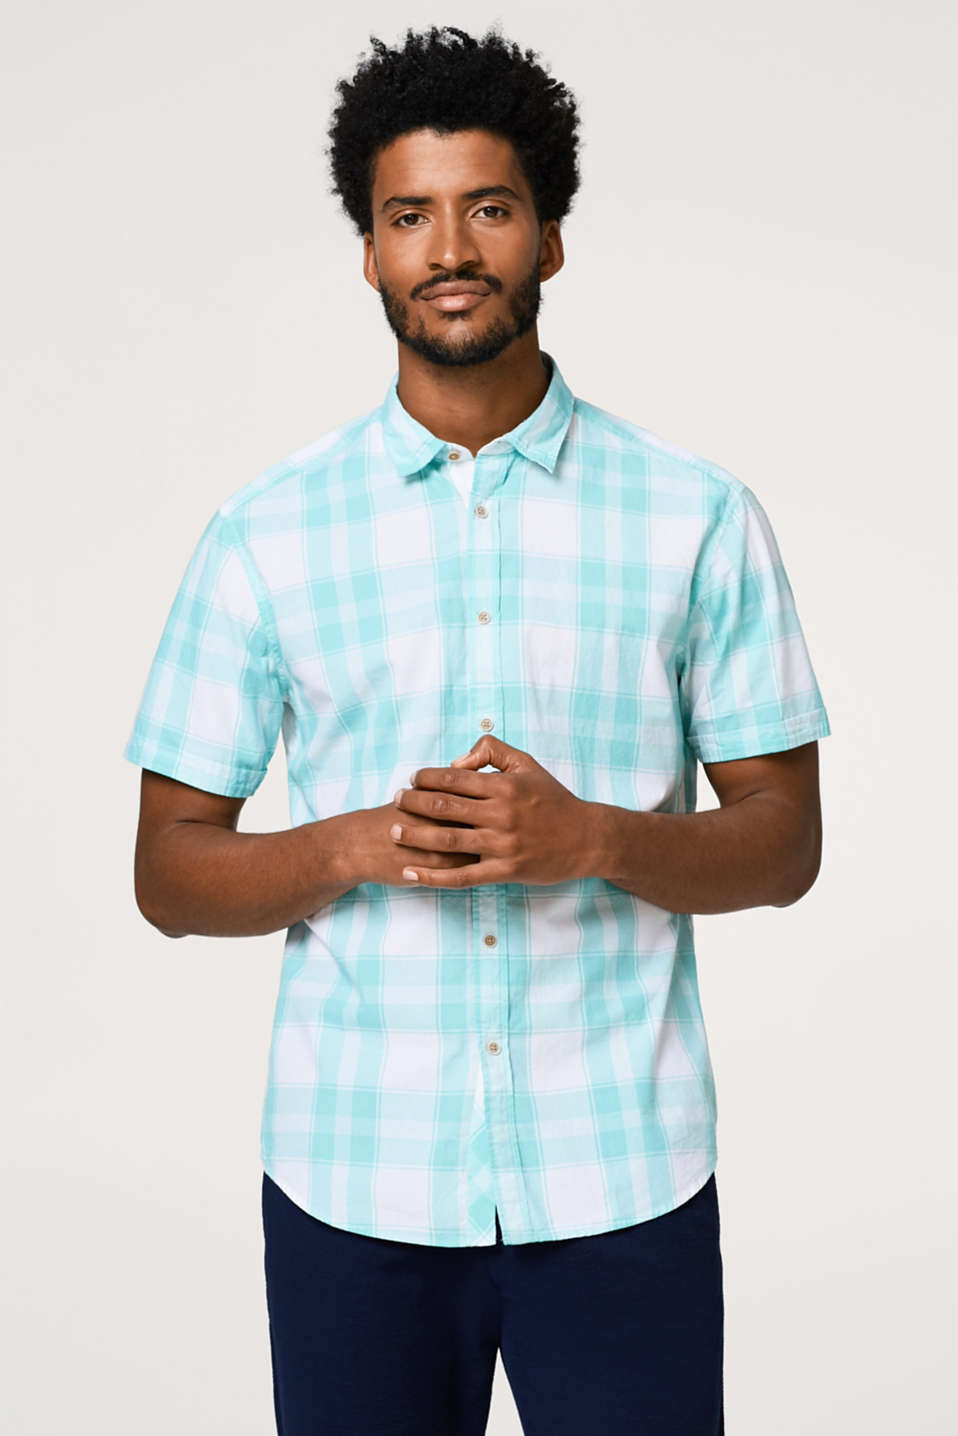 Esprit - Short sleeve shirt with a check pattern, in cotton